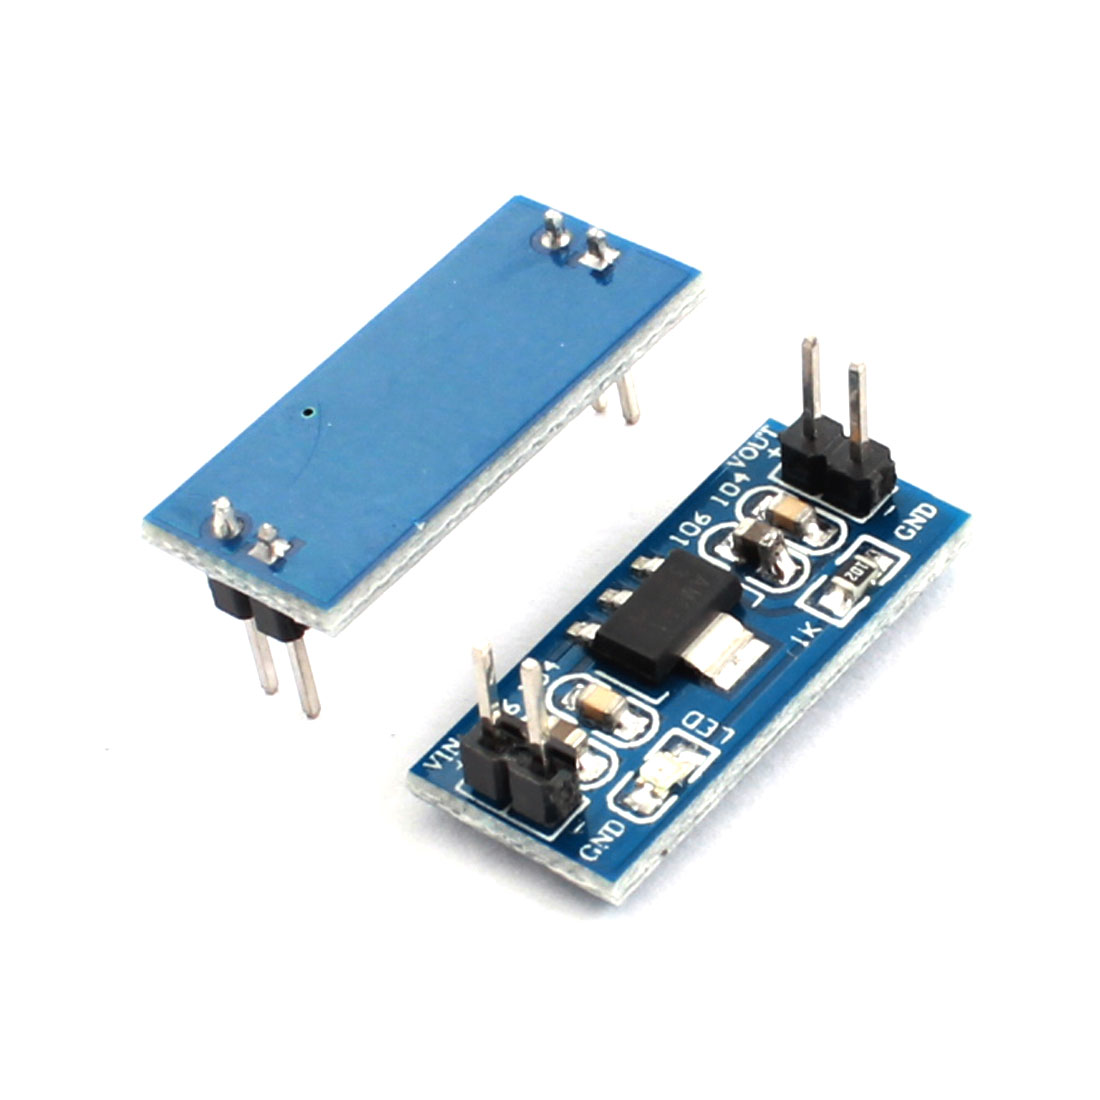 2PCS AMS1117-3.0 DC4.5V-7V to DC3.3V 800mA Step-Down Voltage Regulator Convertor Module